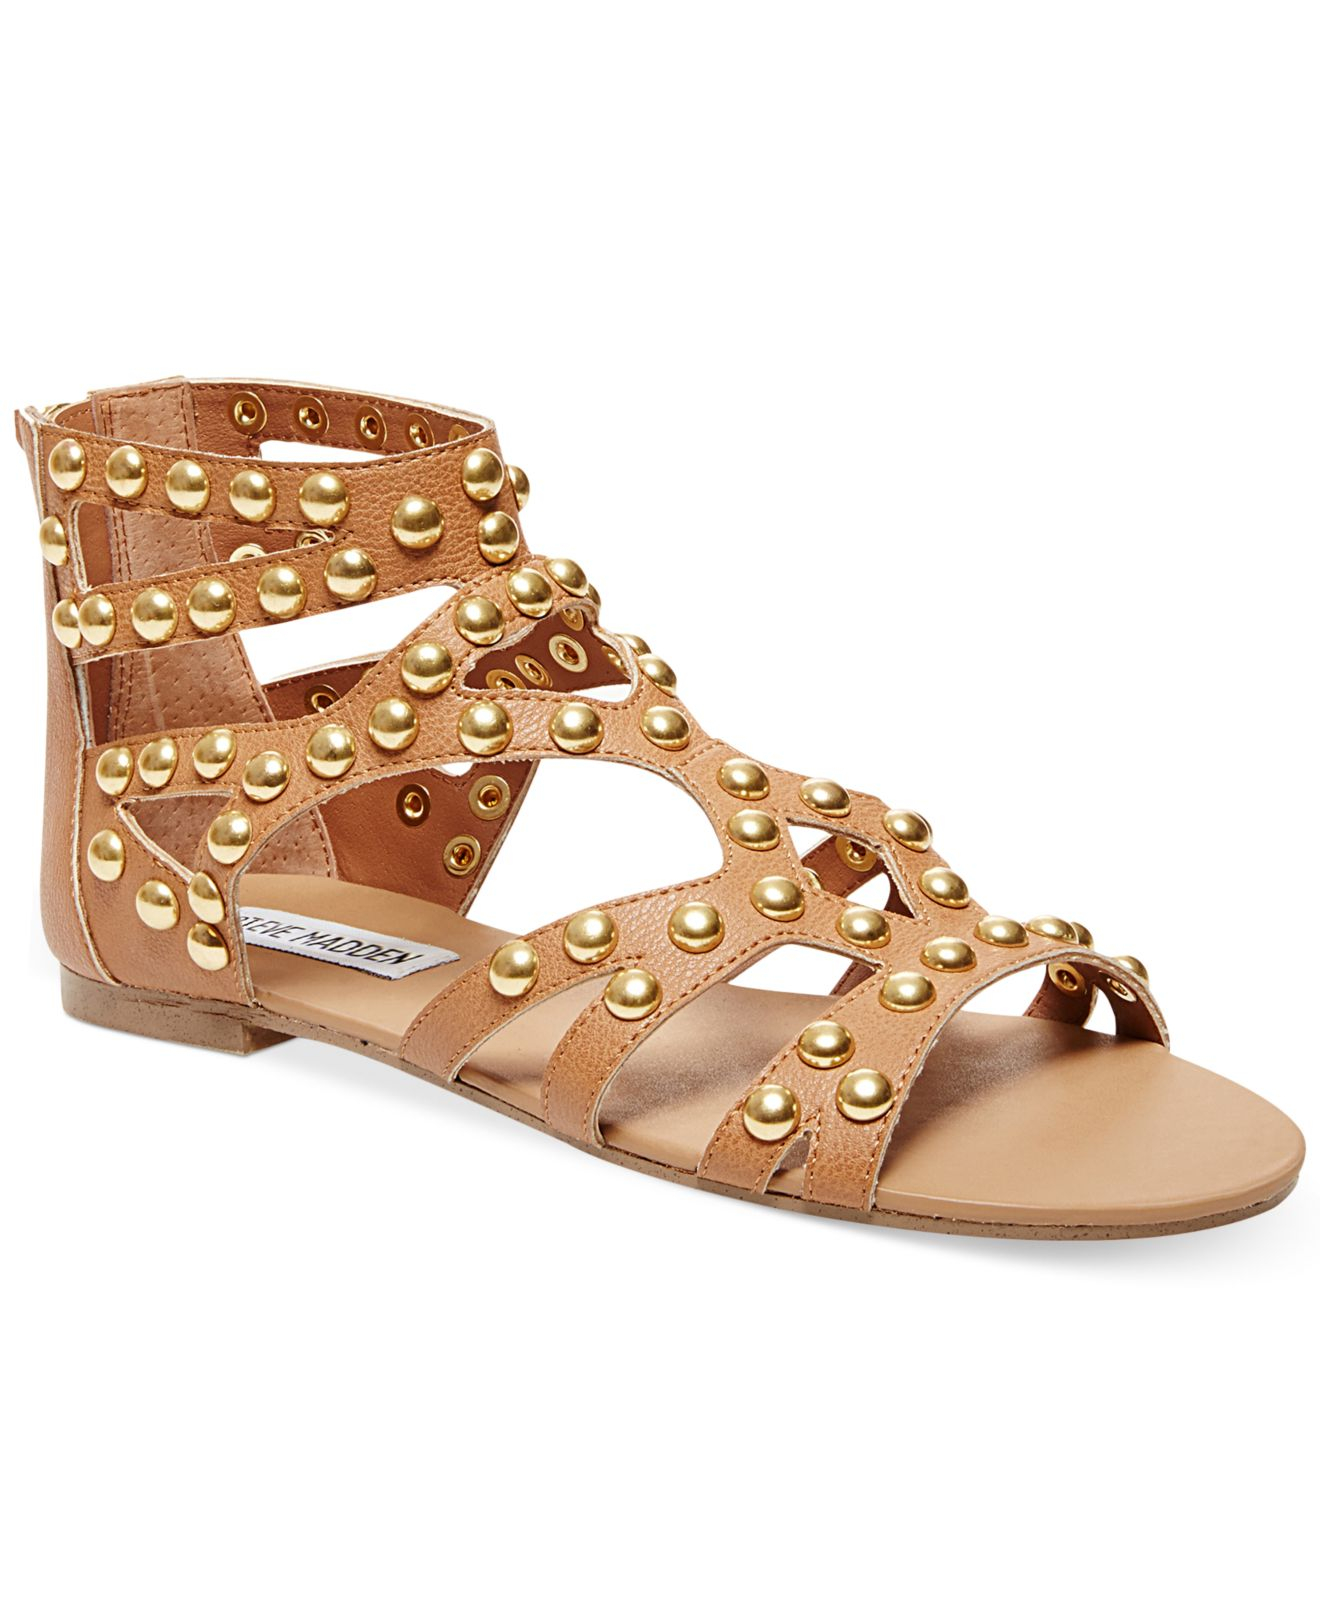 0d5a852cac6e Lyst - Steve Madden Women s Culver-s Embellished Gladiator Flat ...